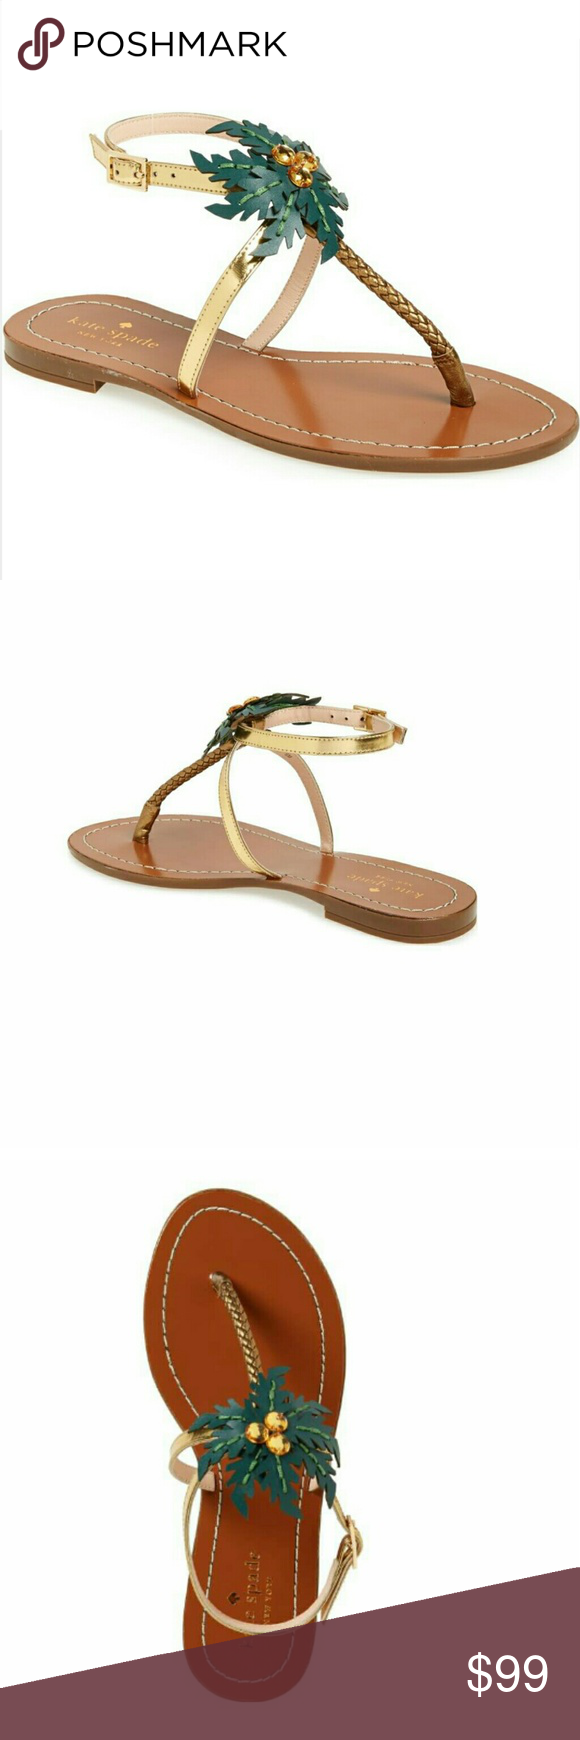 aa9ccb9f2cfd Kate spade new york solana palm tree sandal NWOT Size 9 (eb) inspired by  the tropics and topped with crystal coconut embellished leather fronds